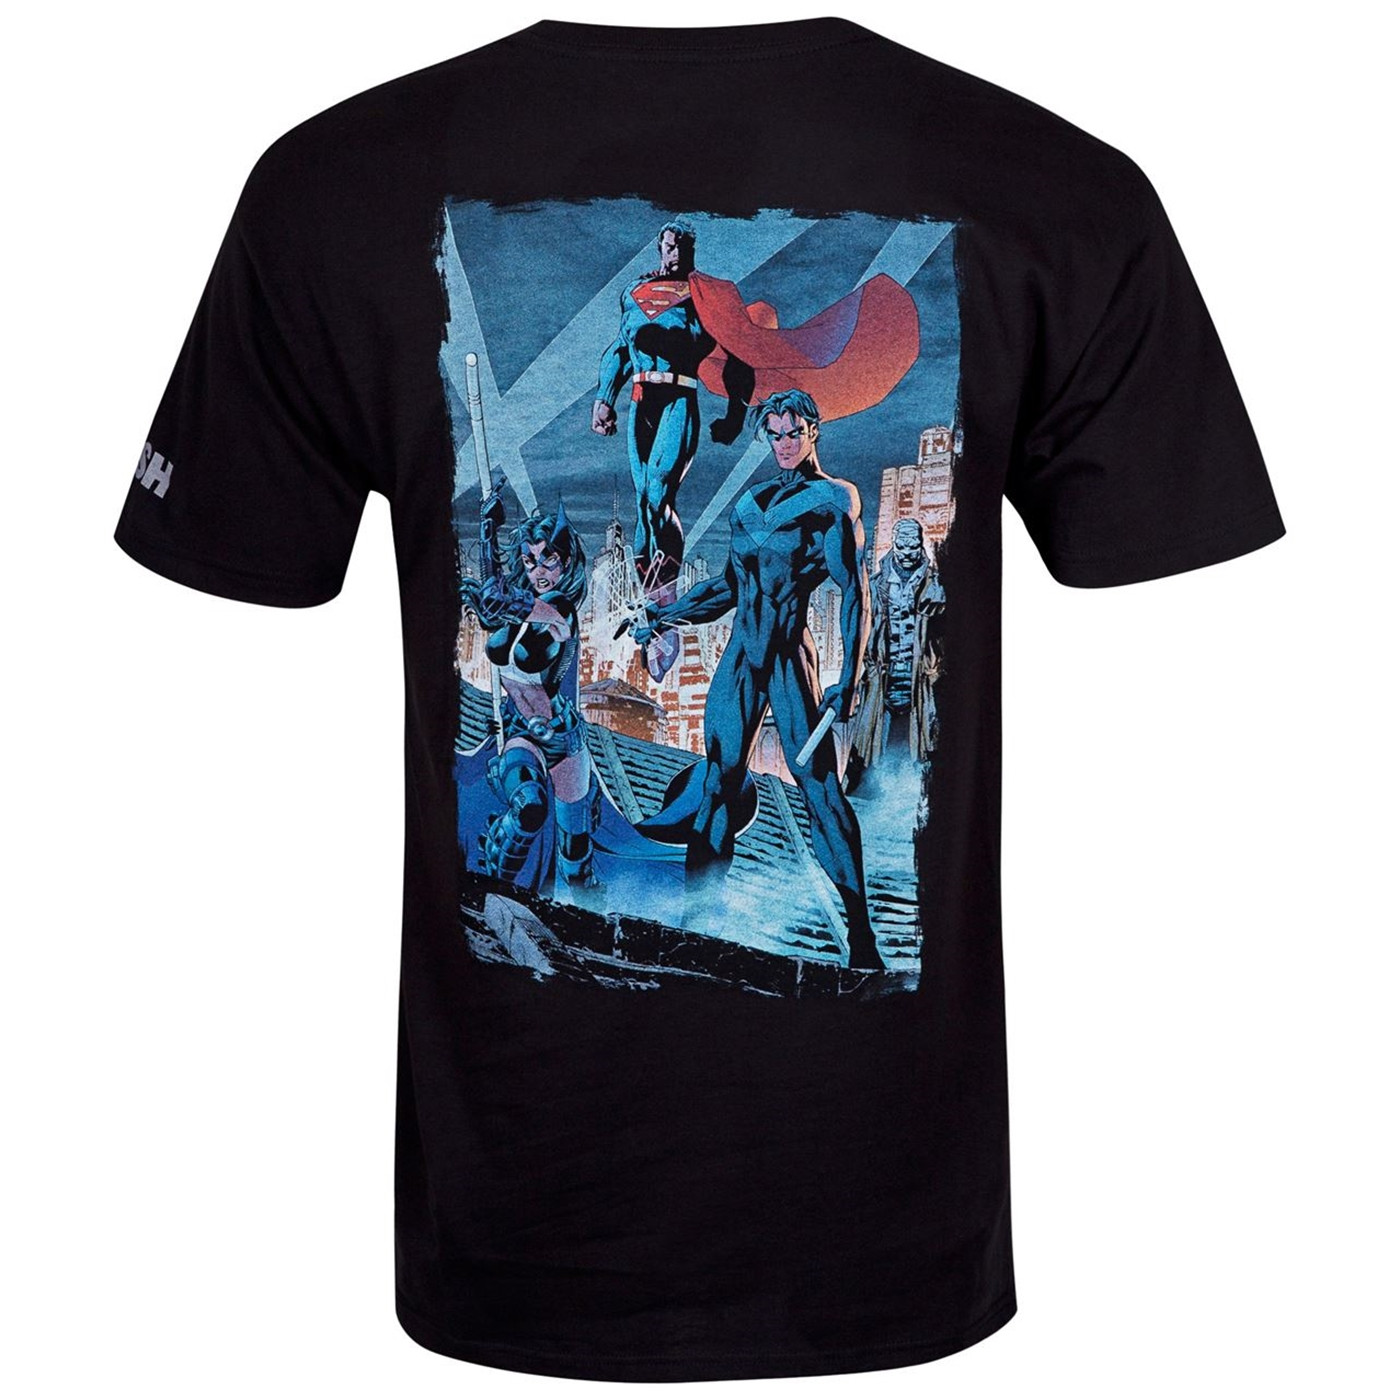 Batman Hush Comic Rooftop Meeting Image Men's T-Shirt